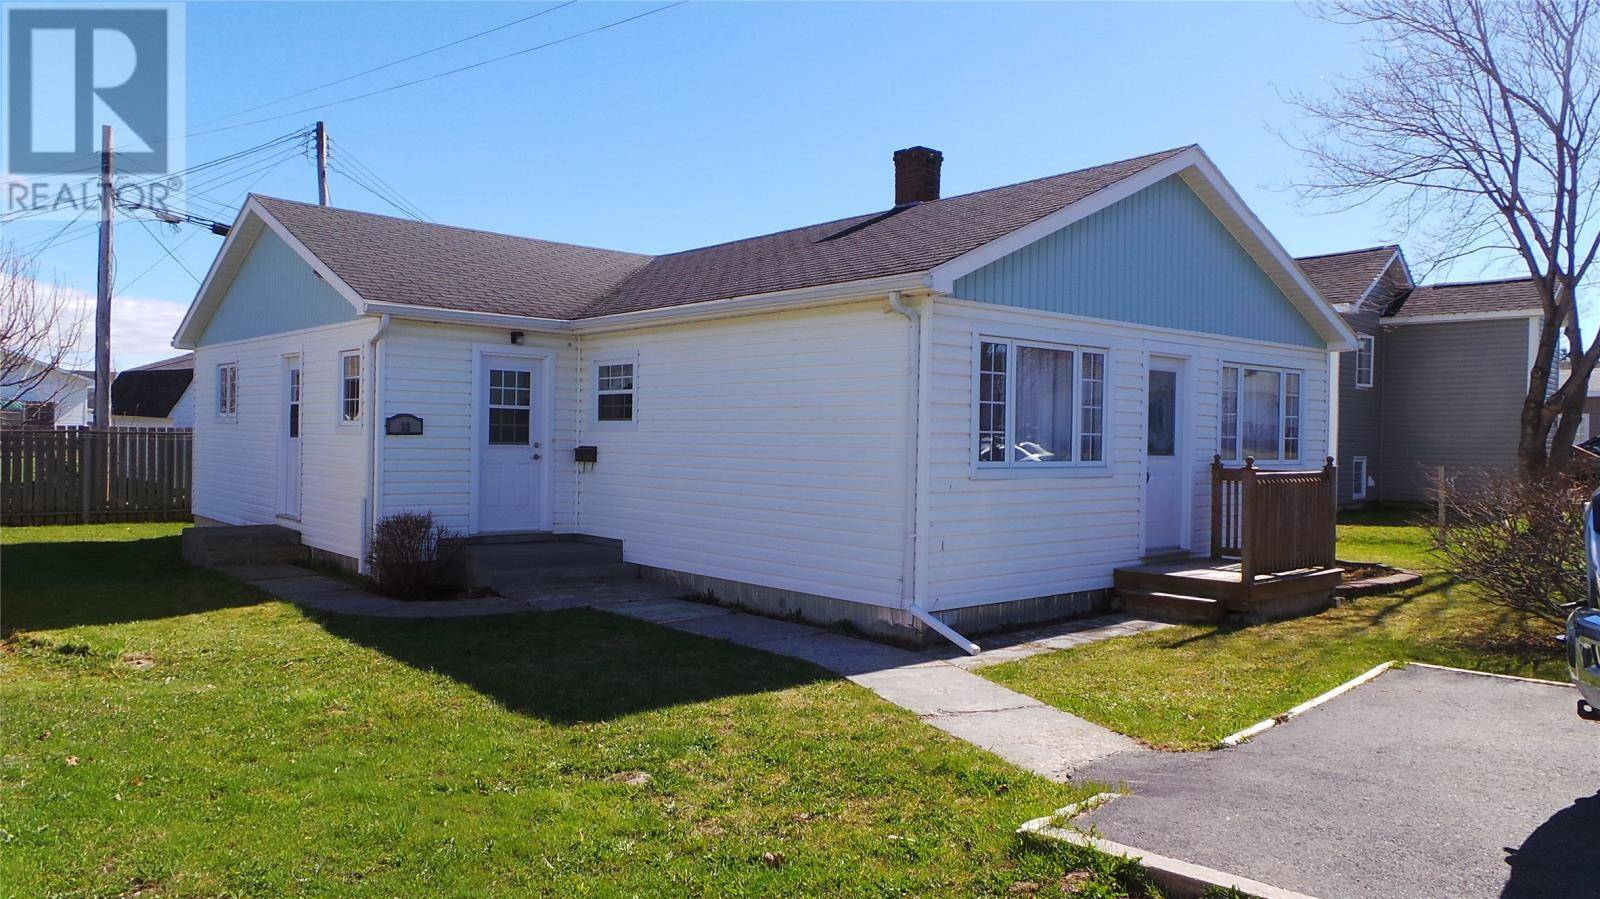 House for sale at 32 St Clare Ave Stephenville Newfoundland - MLS: 1196725